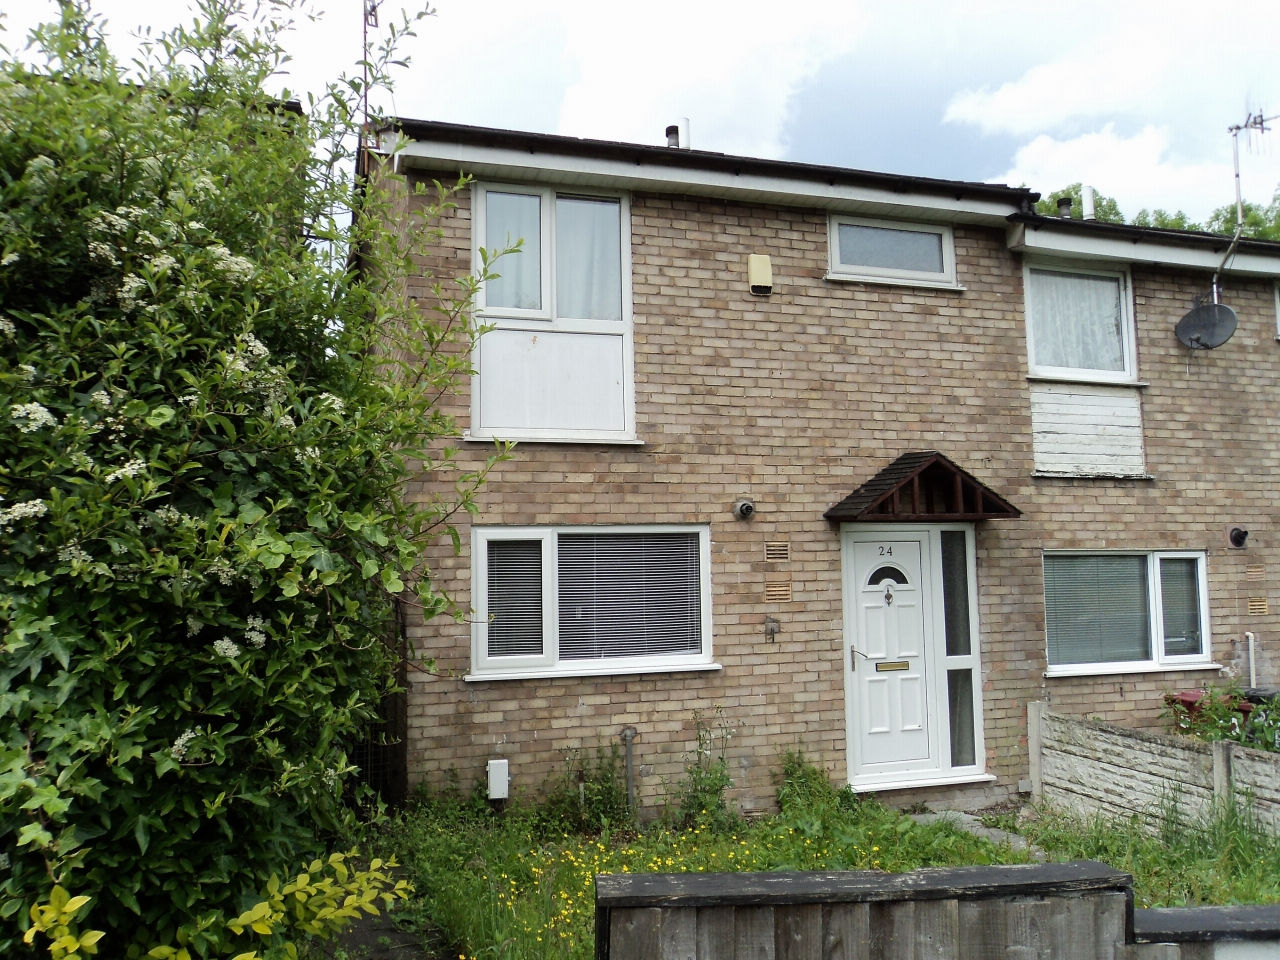 3 Bedroom End Terraced House For Sale - Image 2